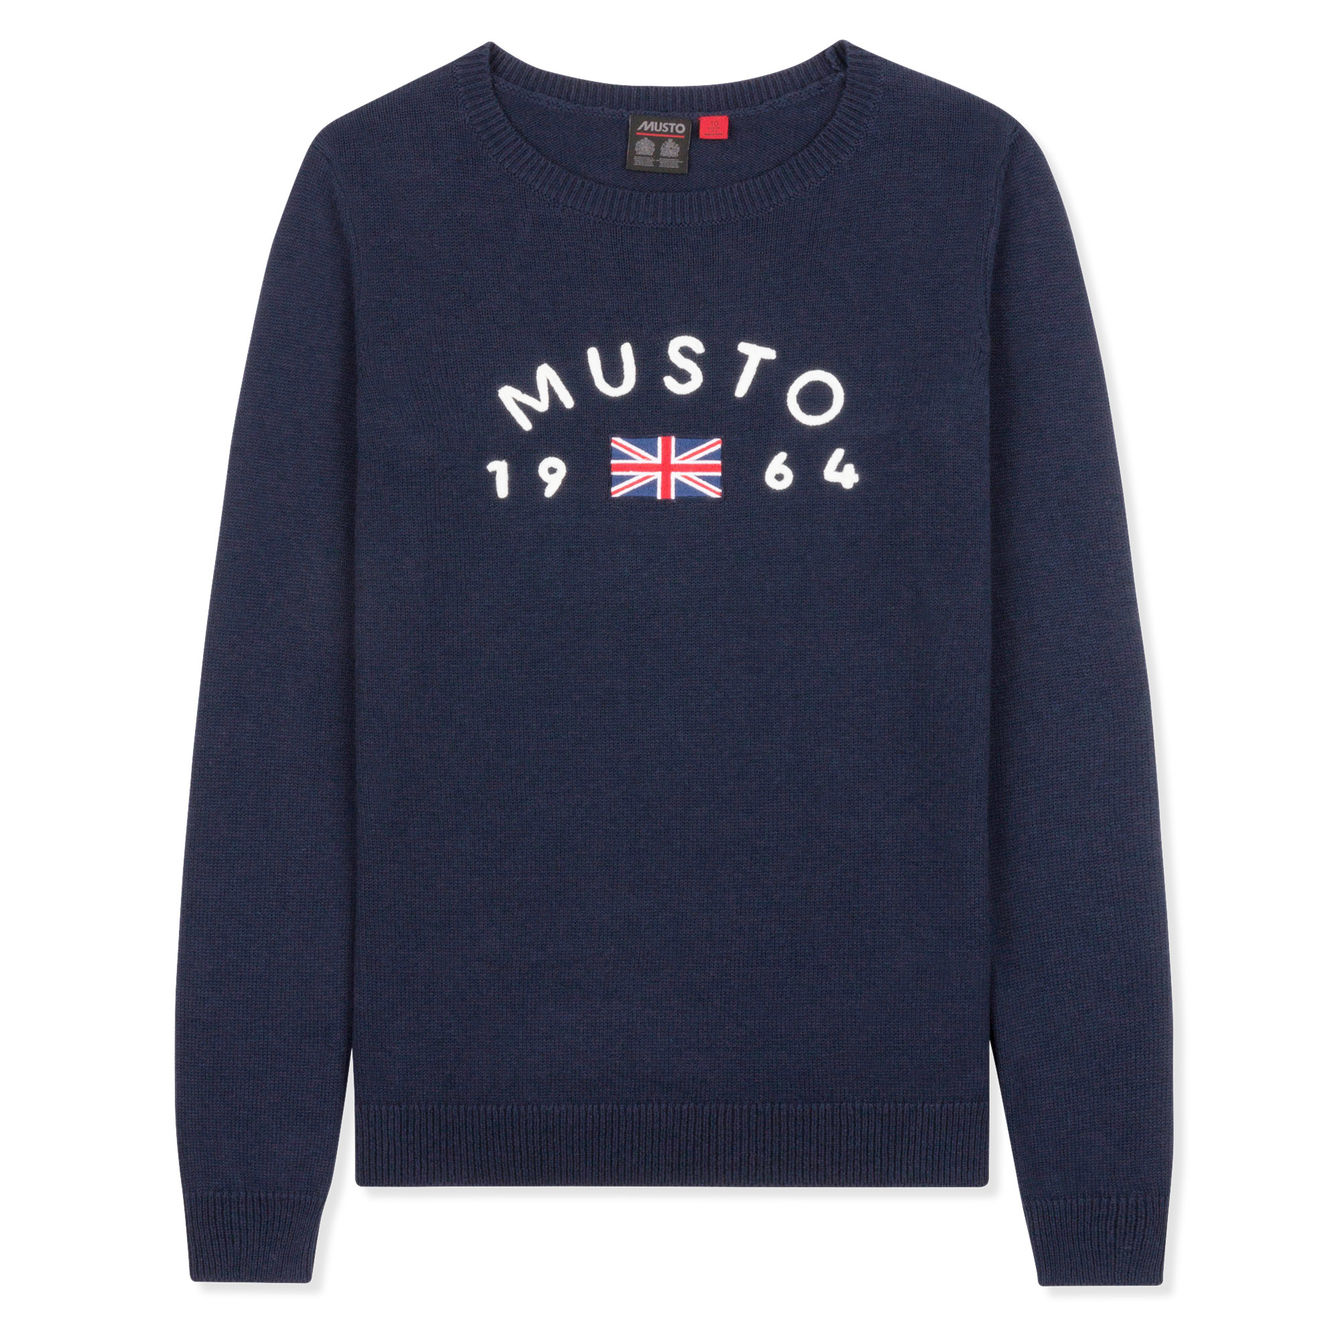 YACHT CREW NECK KNIT FW